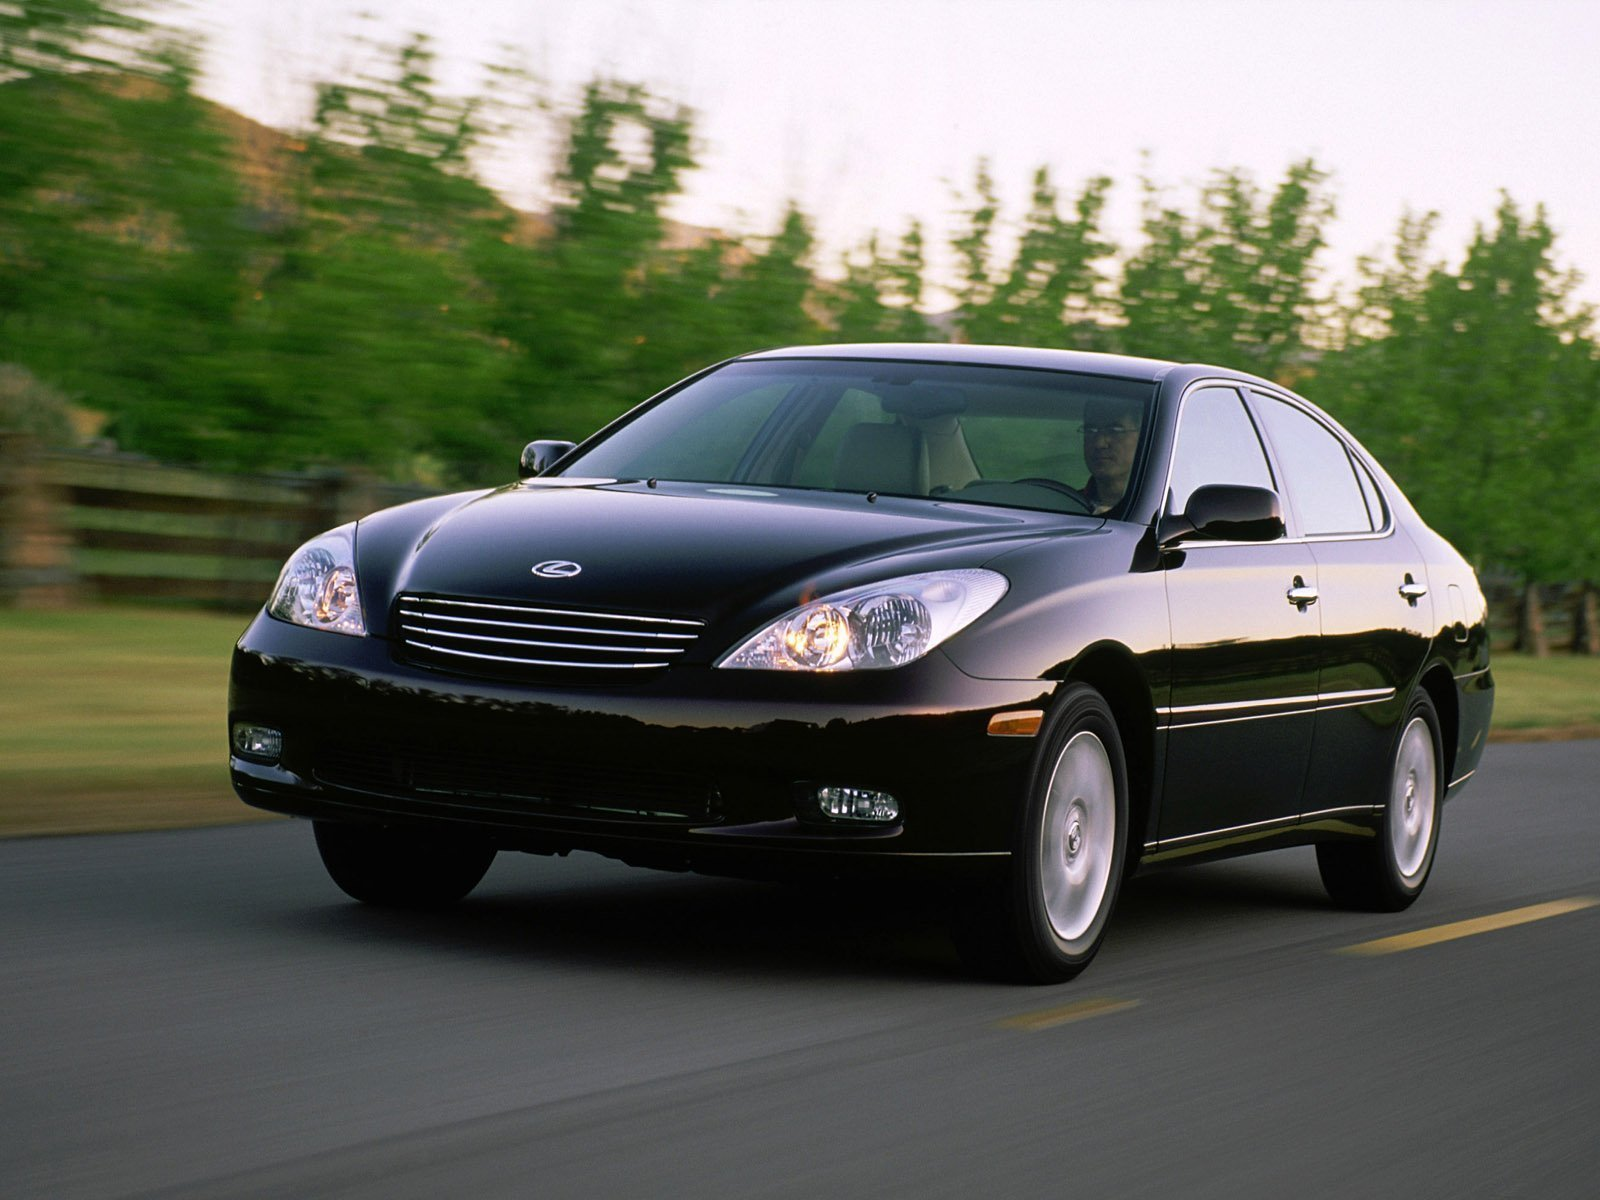 2006 Lexus ES 330 Review